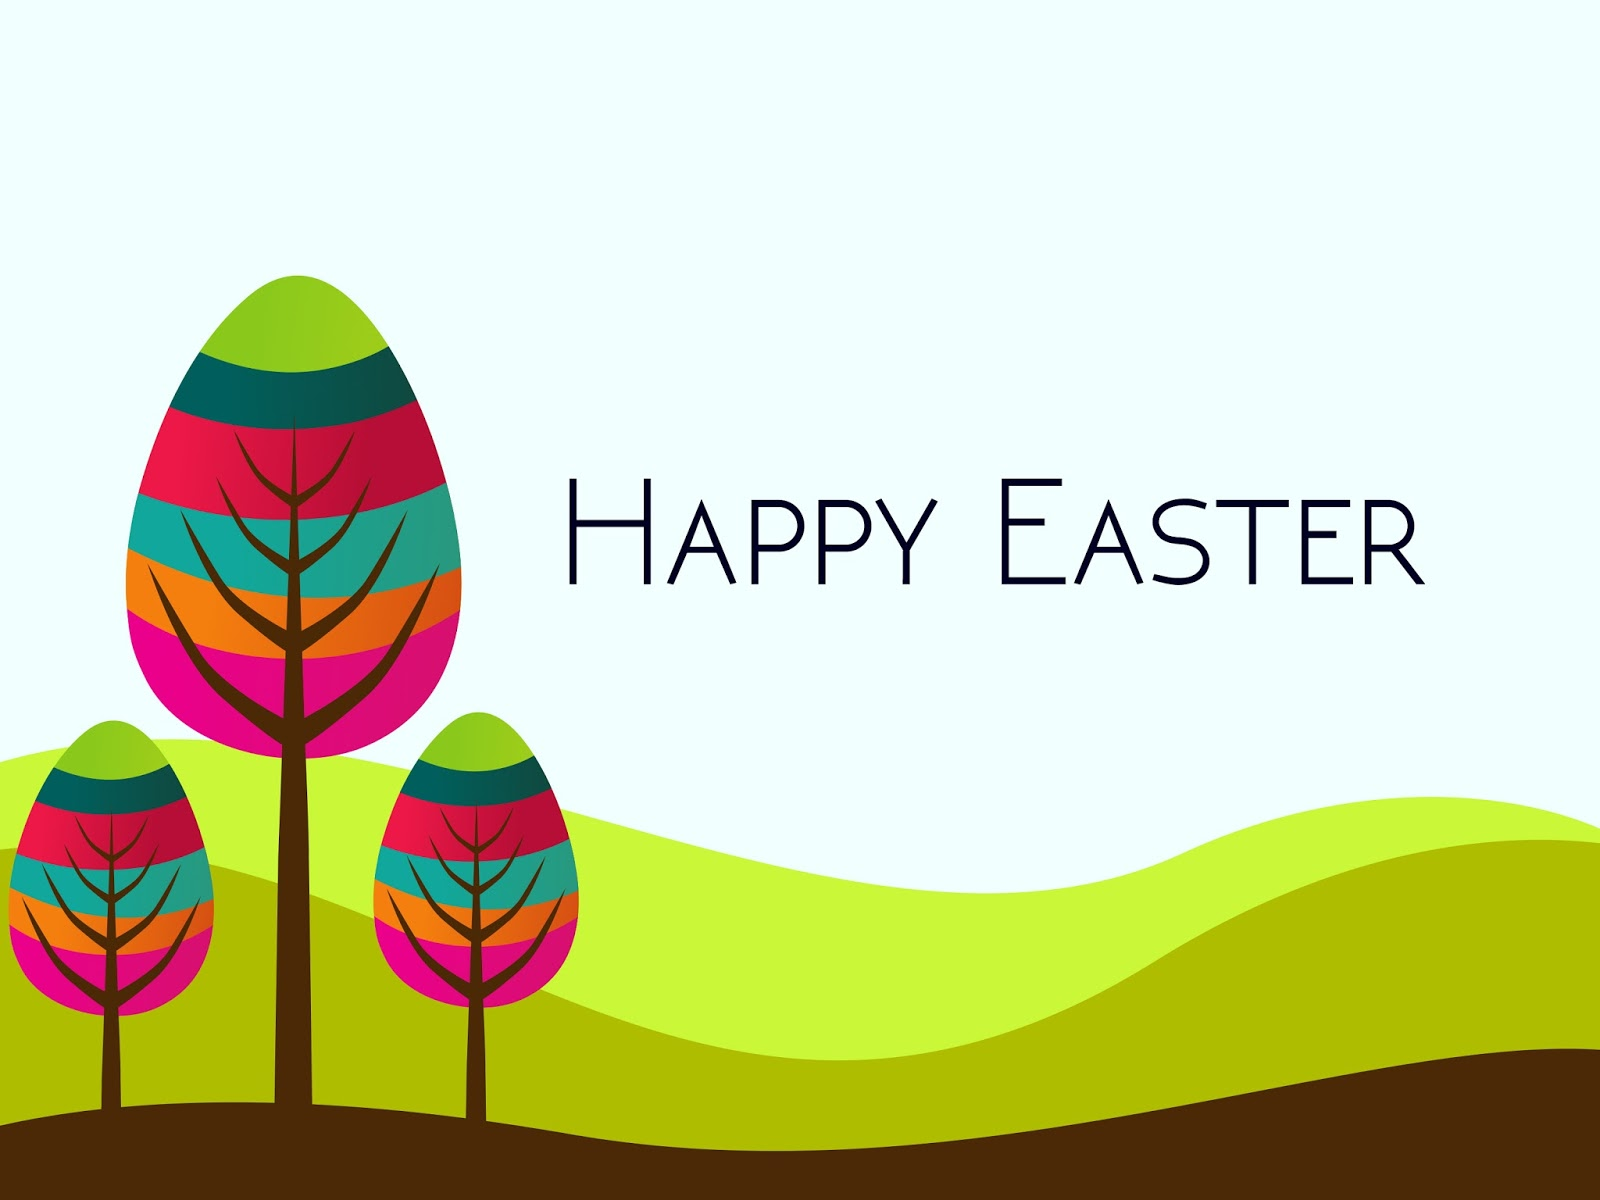 Happy easter 2021 HD images Free Download (2)